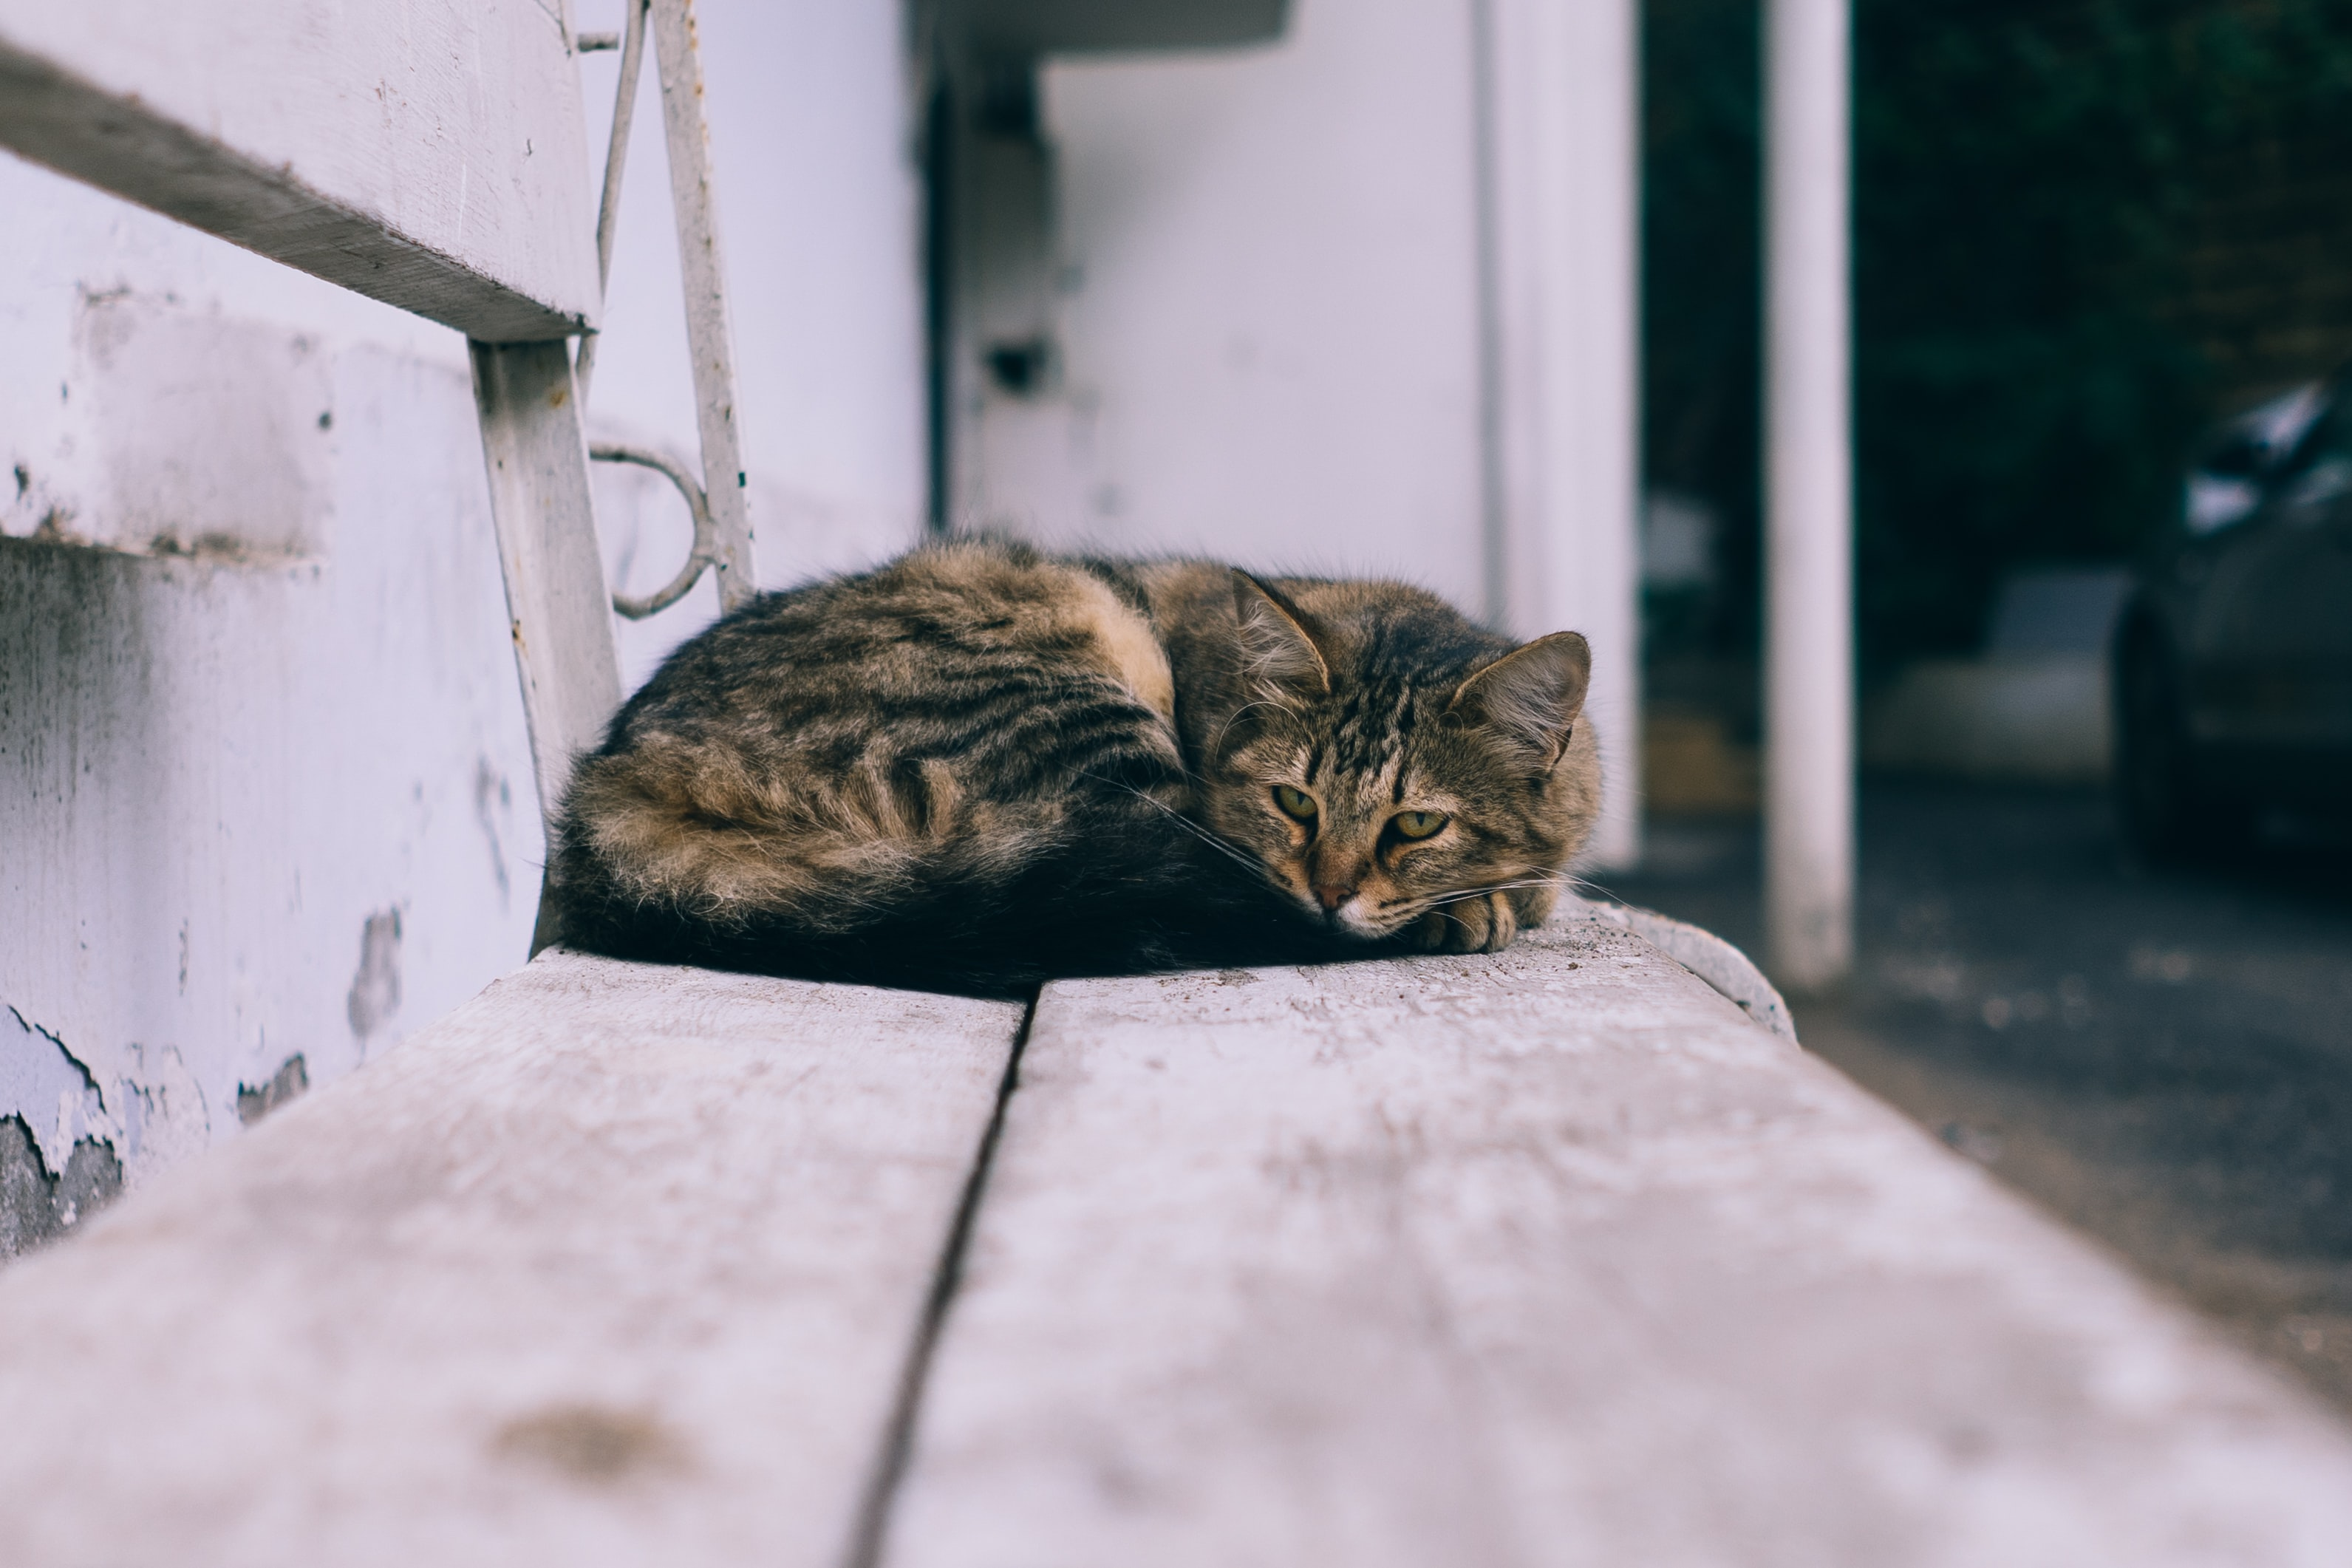 A furry tabby cat curled up on an old bench